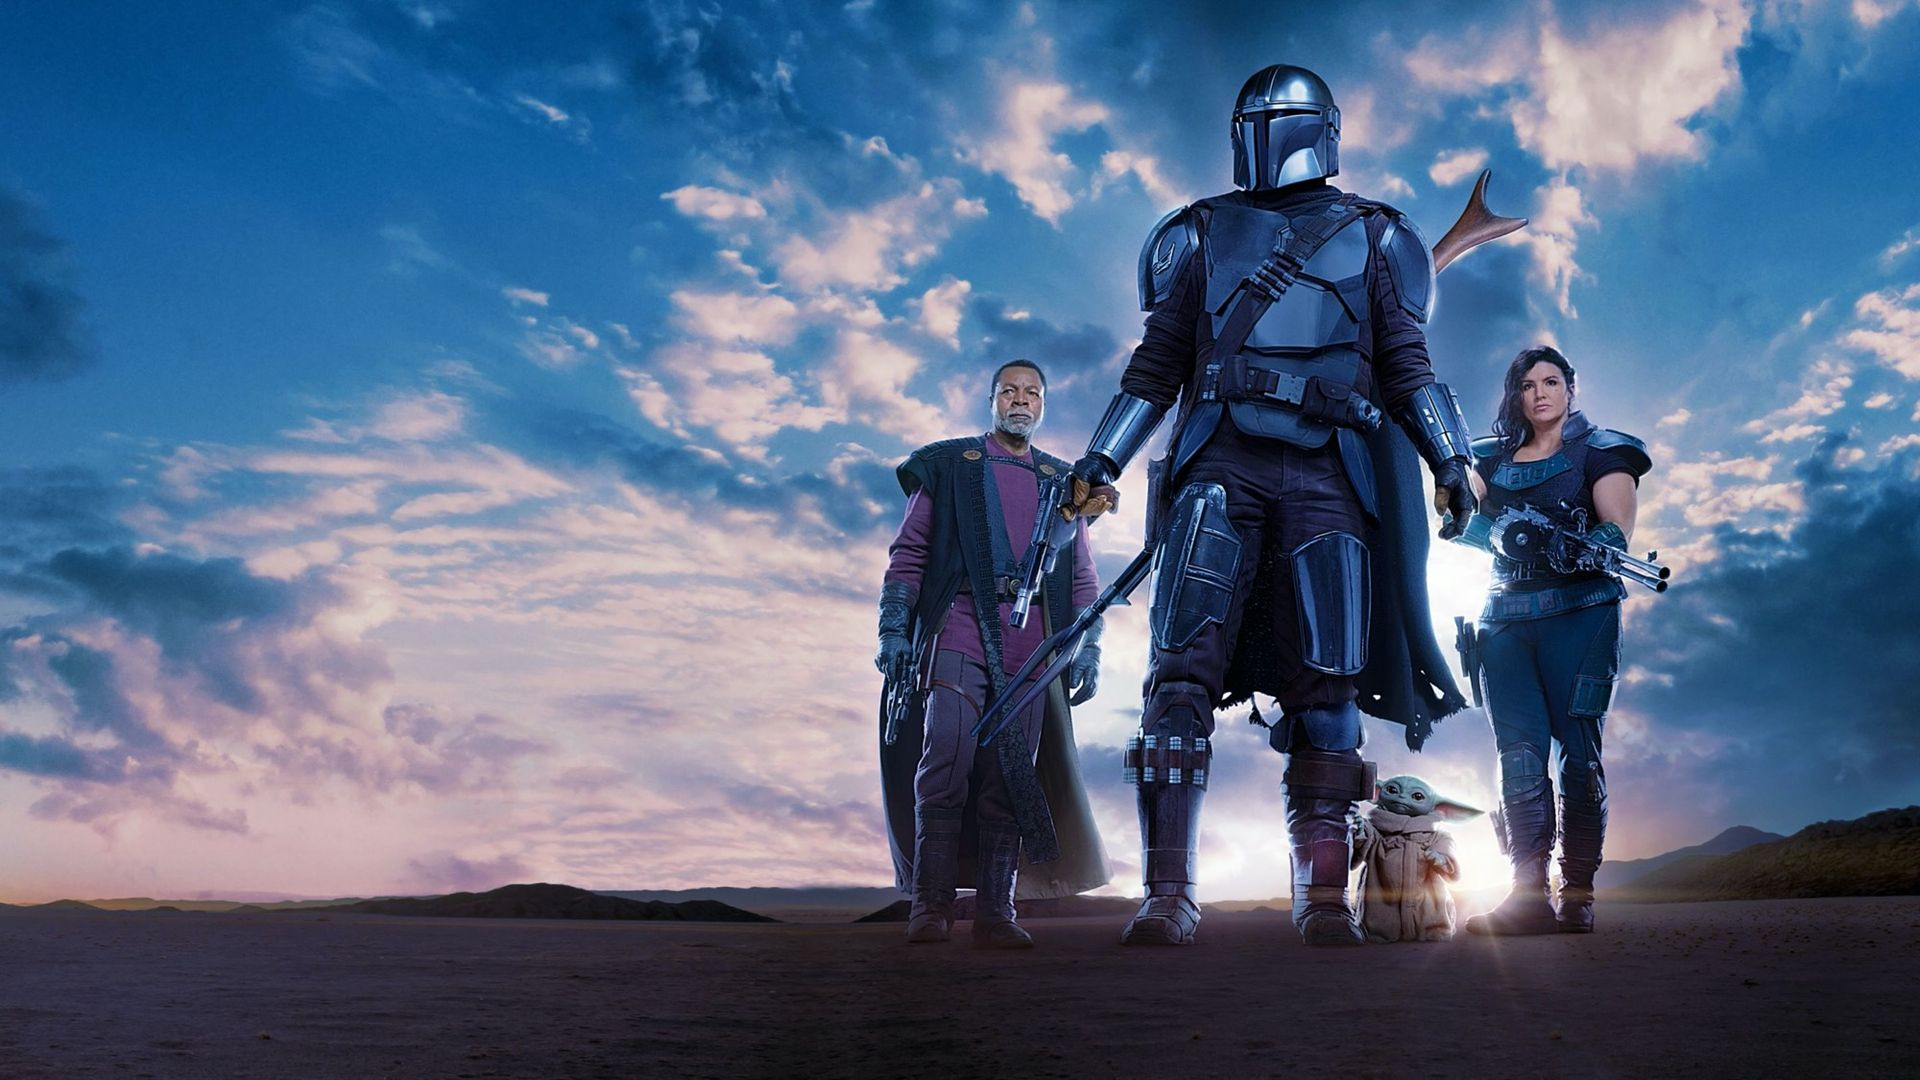 The Mandalorian mest nedladdade tv-serien 2020